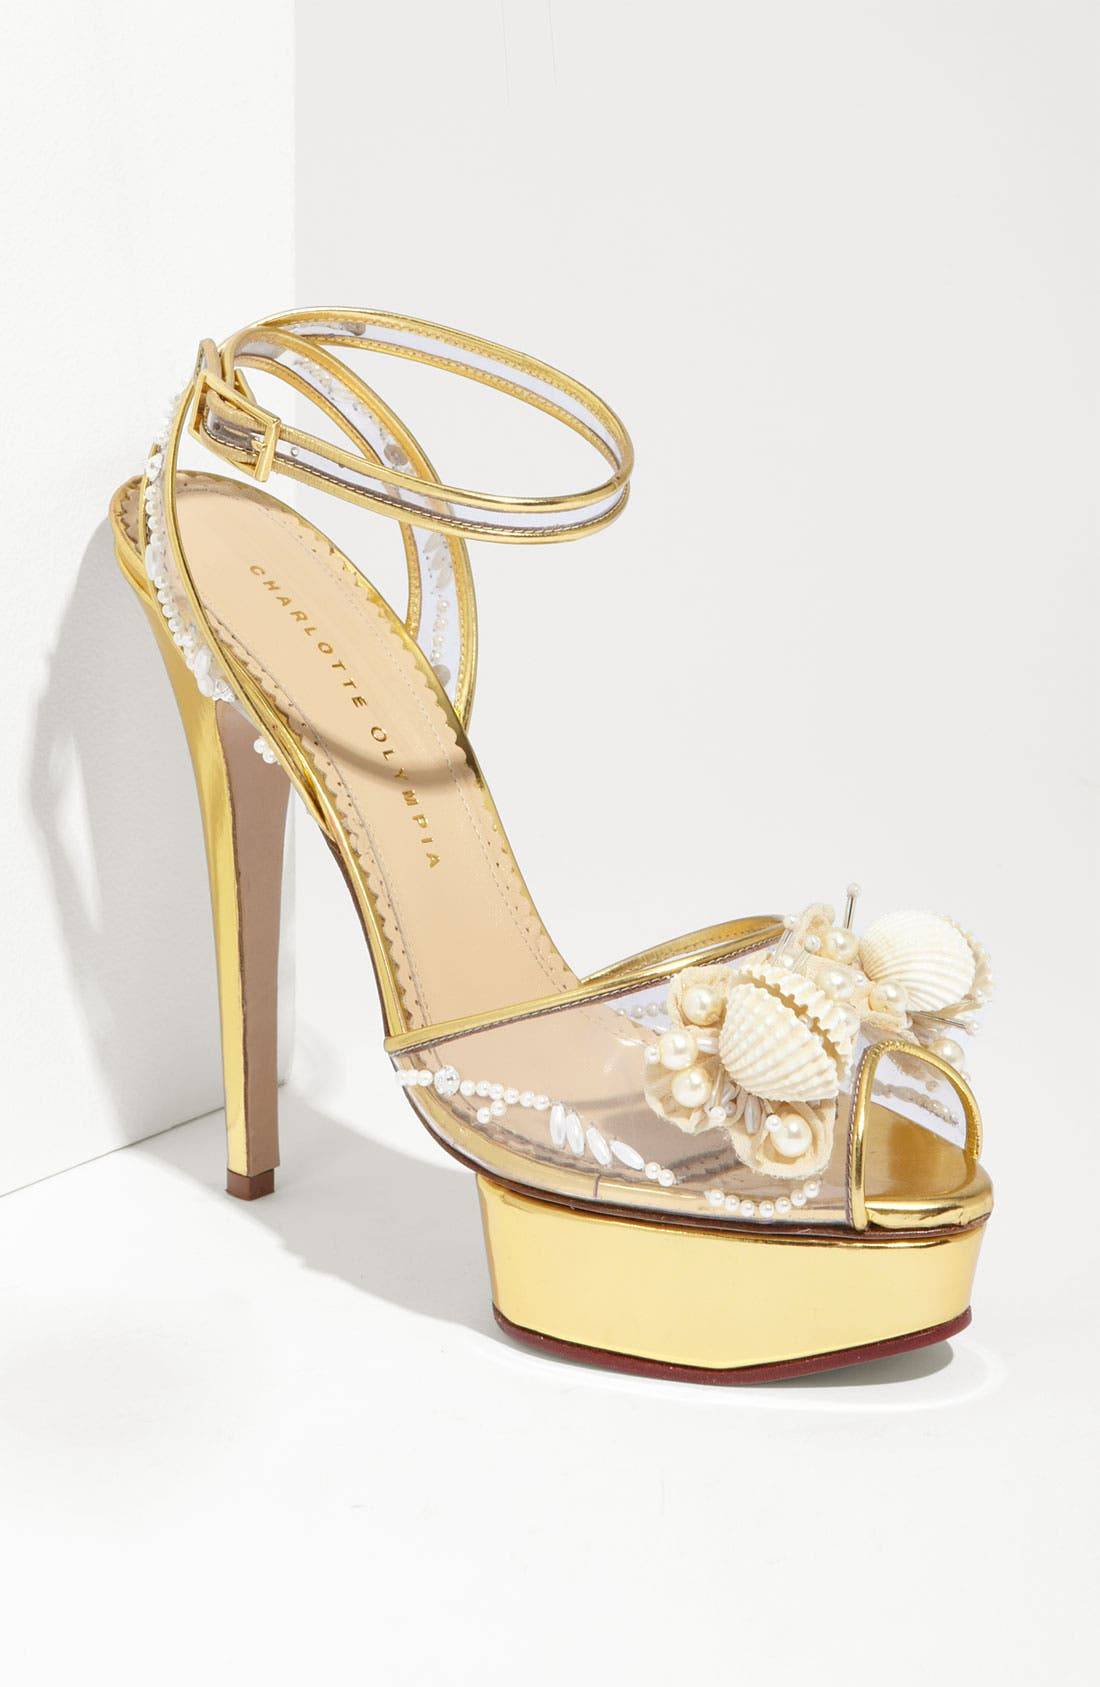 Alternate Image 1 Selected - Charlotte Olympia 'Sea Shells' Sandal